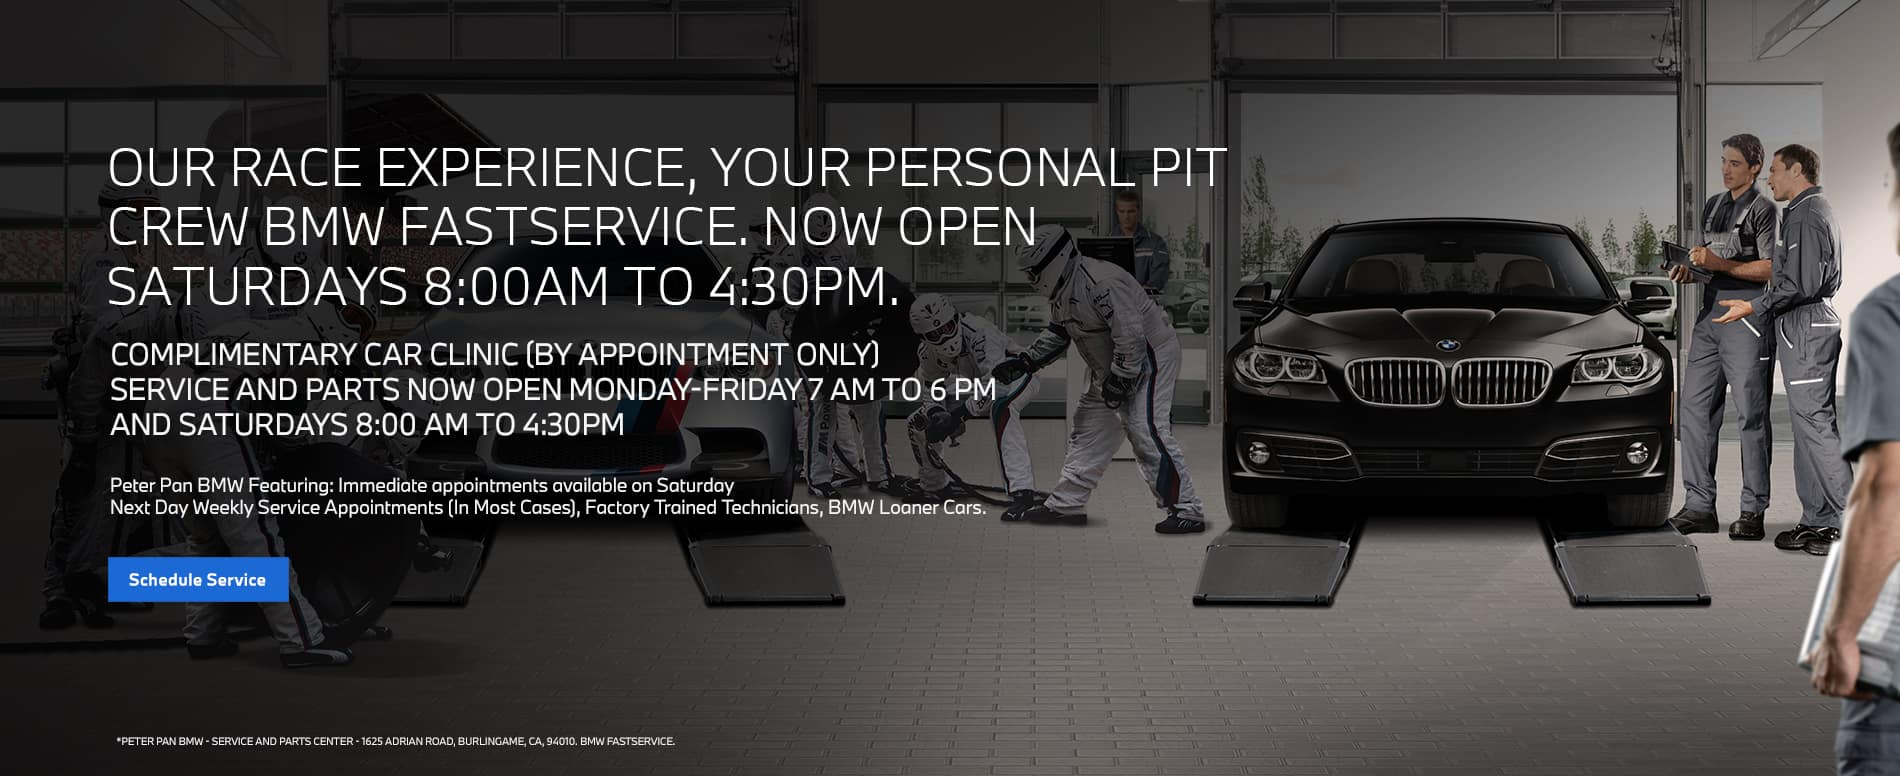 OUR RACE EXPERIENCE, YOUR PERSONAL PIT CREW BMW FAST SERVICE.